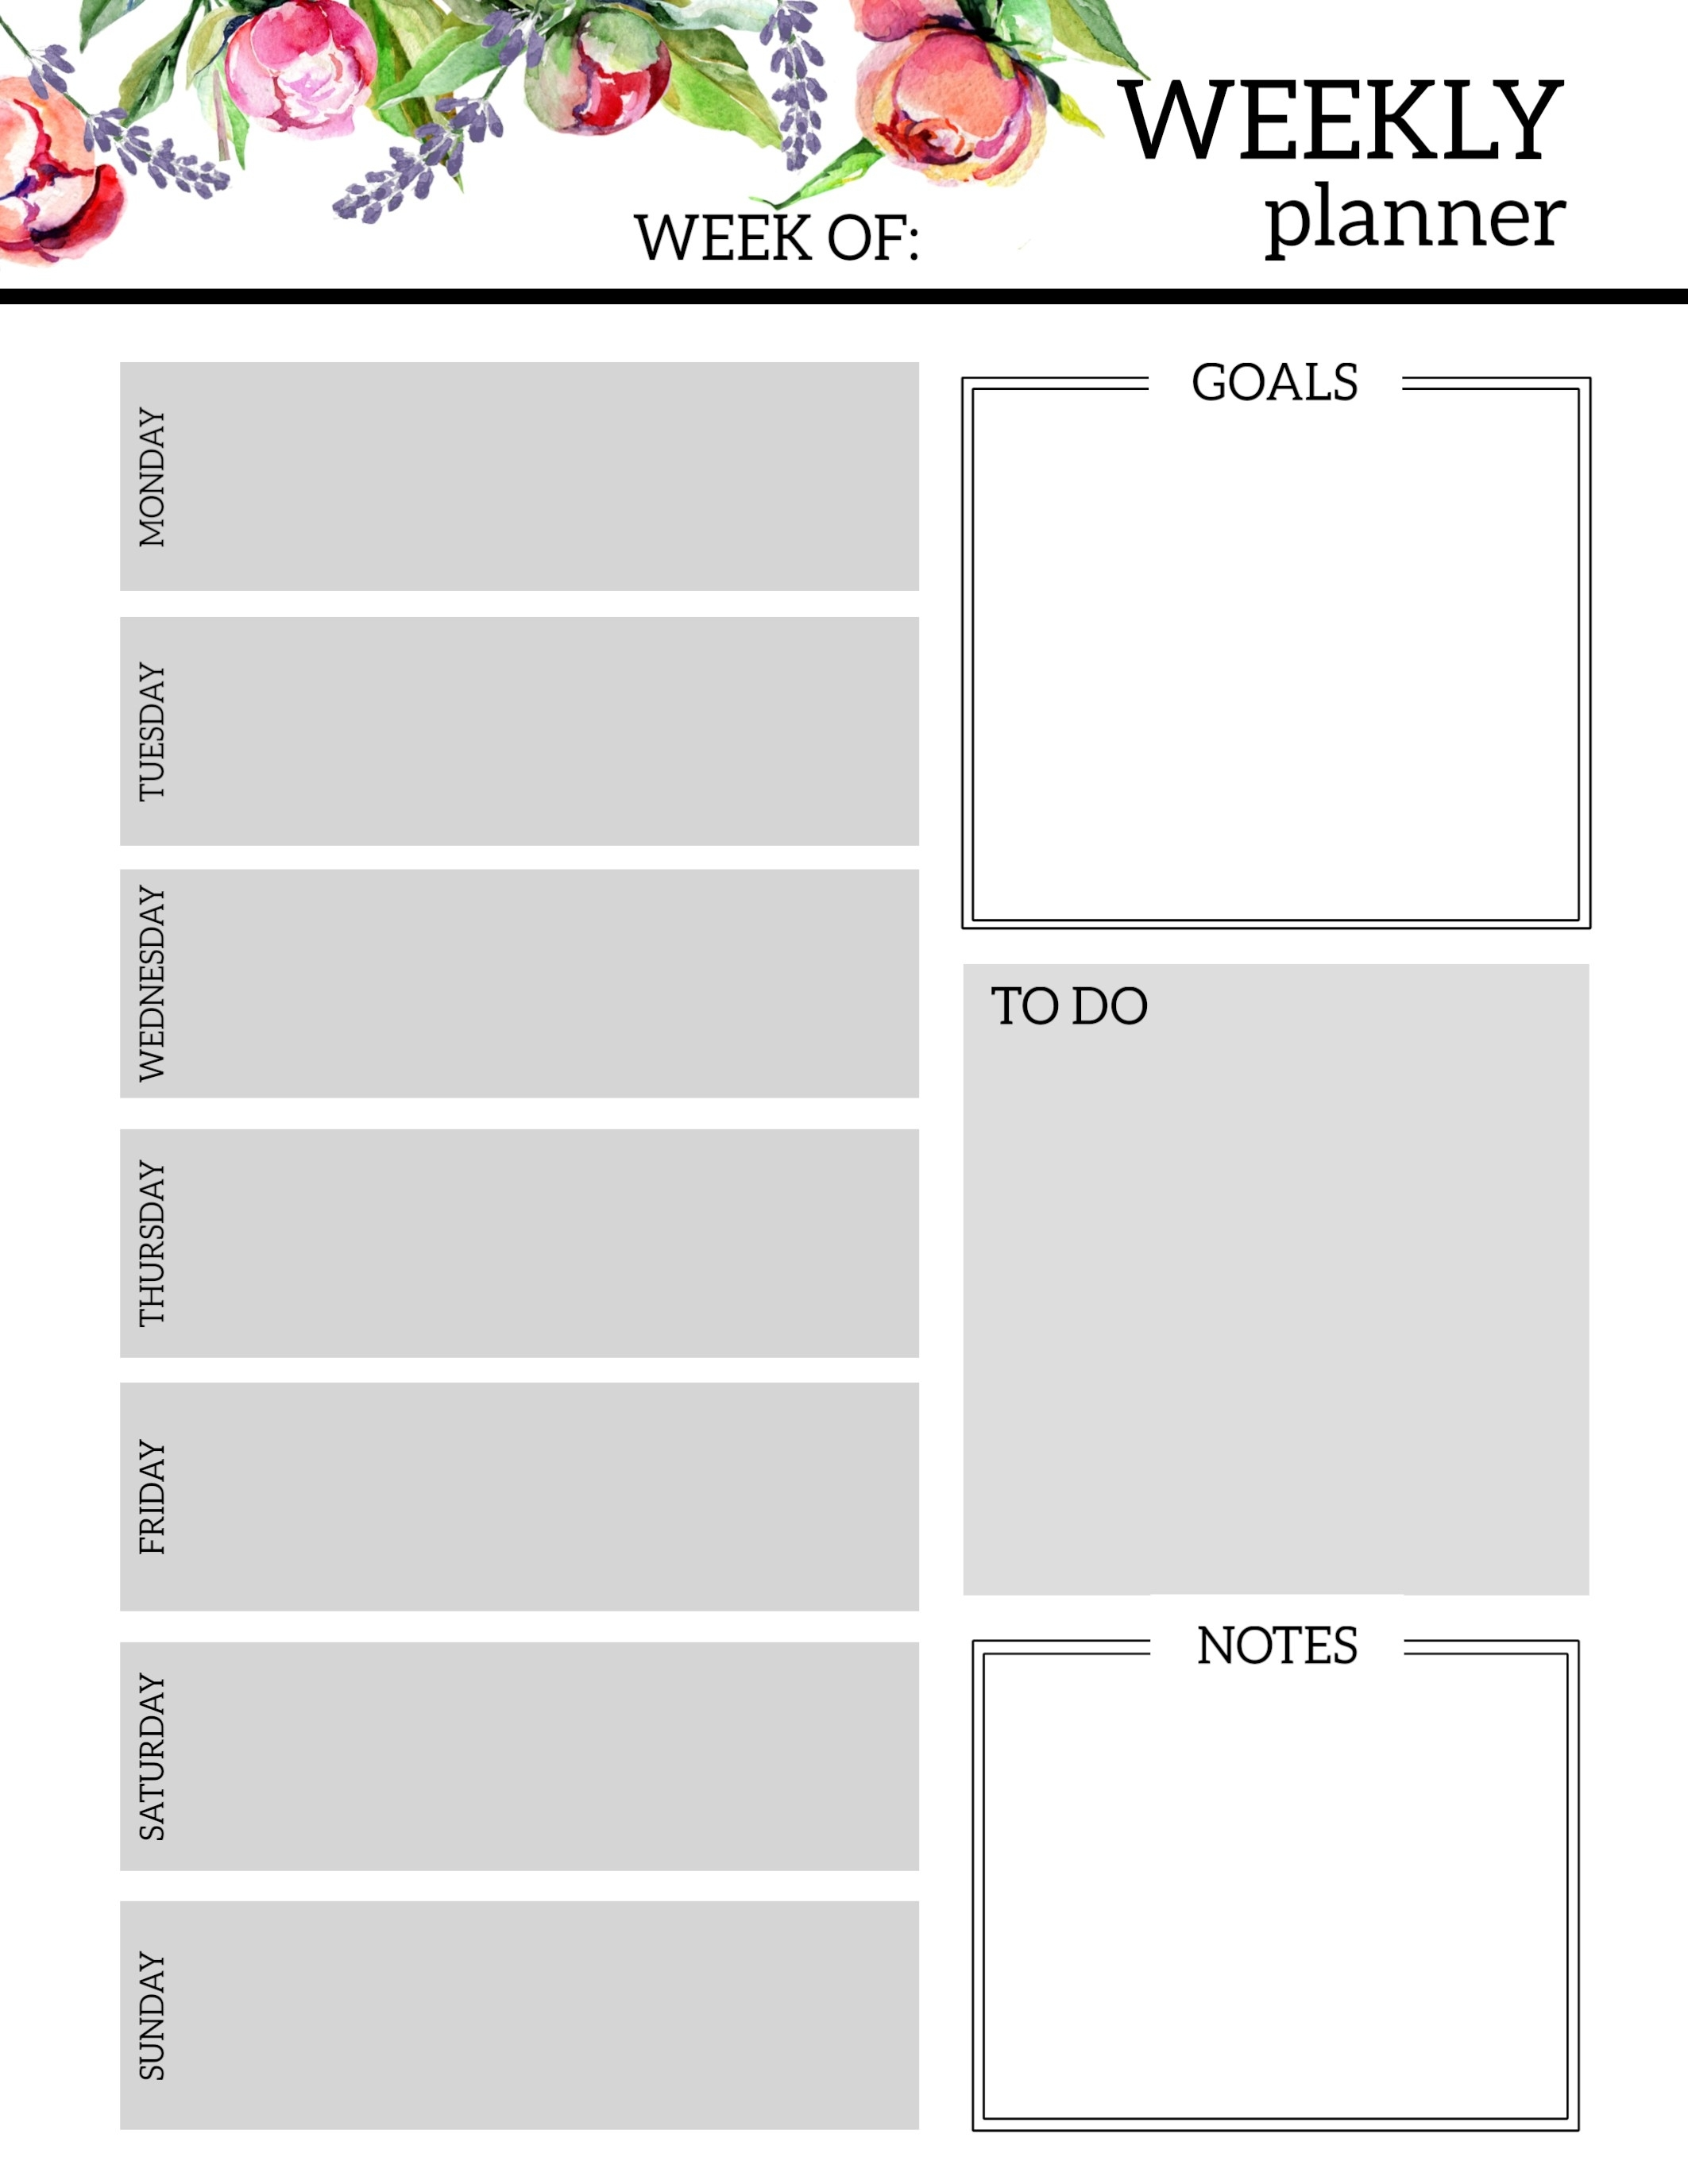 Floral Free Printable Weekly Planner Template - Paper Trail Design intended for Free Printable Weekly Schedule Template